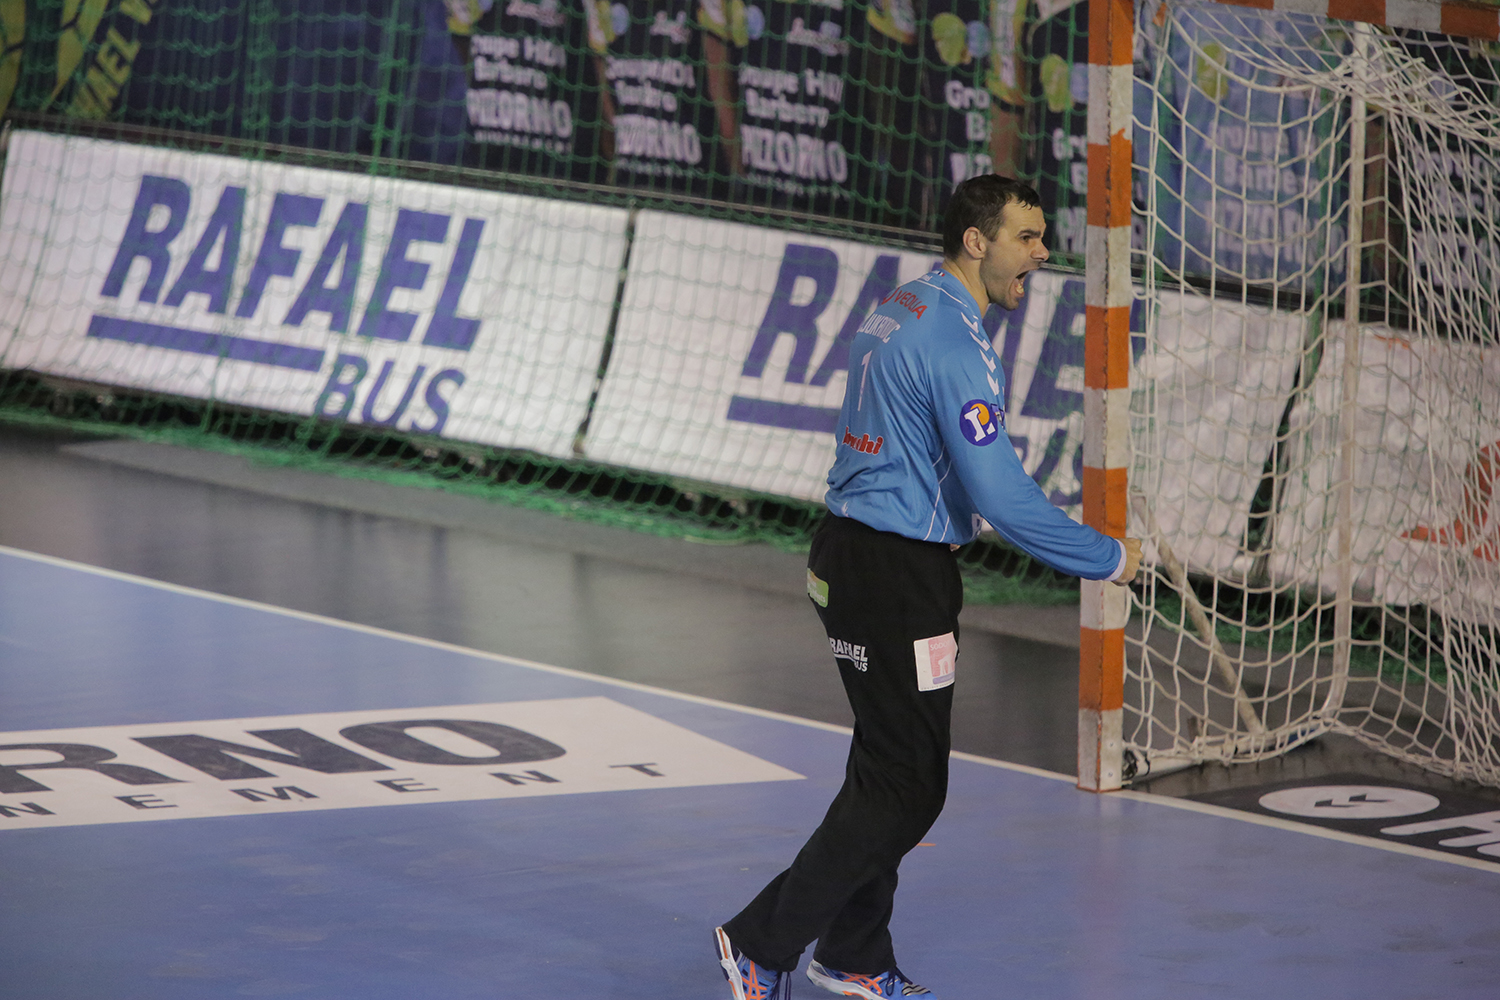 Slavisa Djukanovic | Handball Goalkeeper SRVHB by ML Terrier le 23 décembre 2014